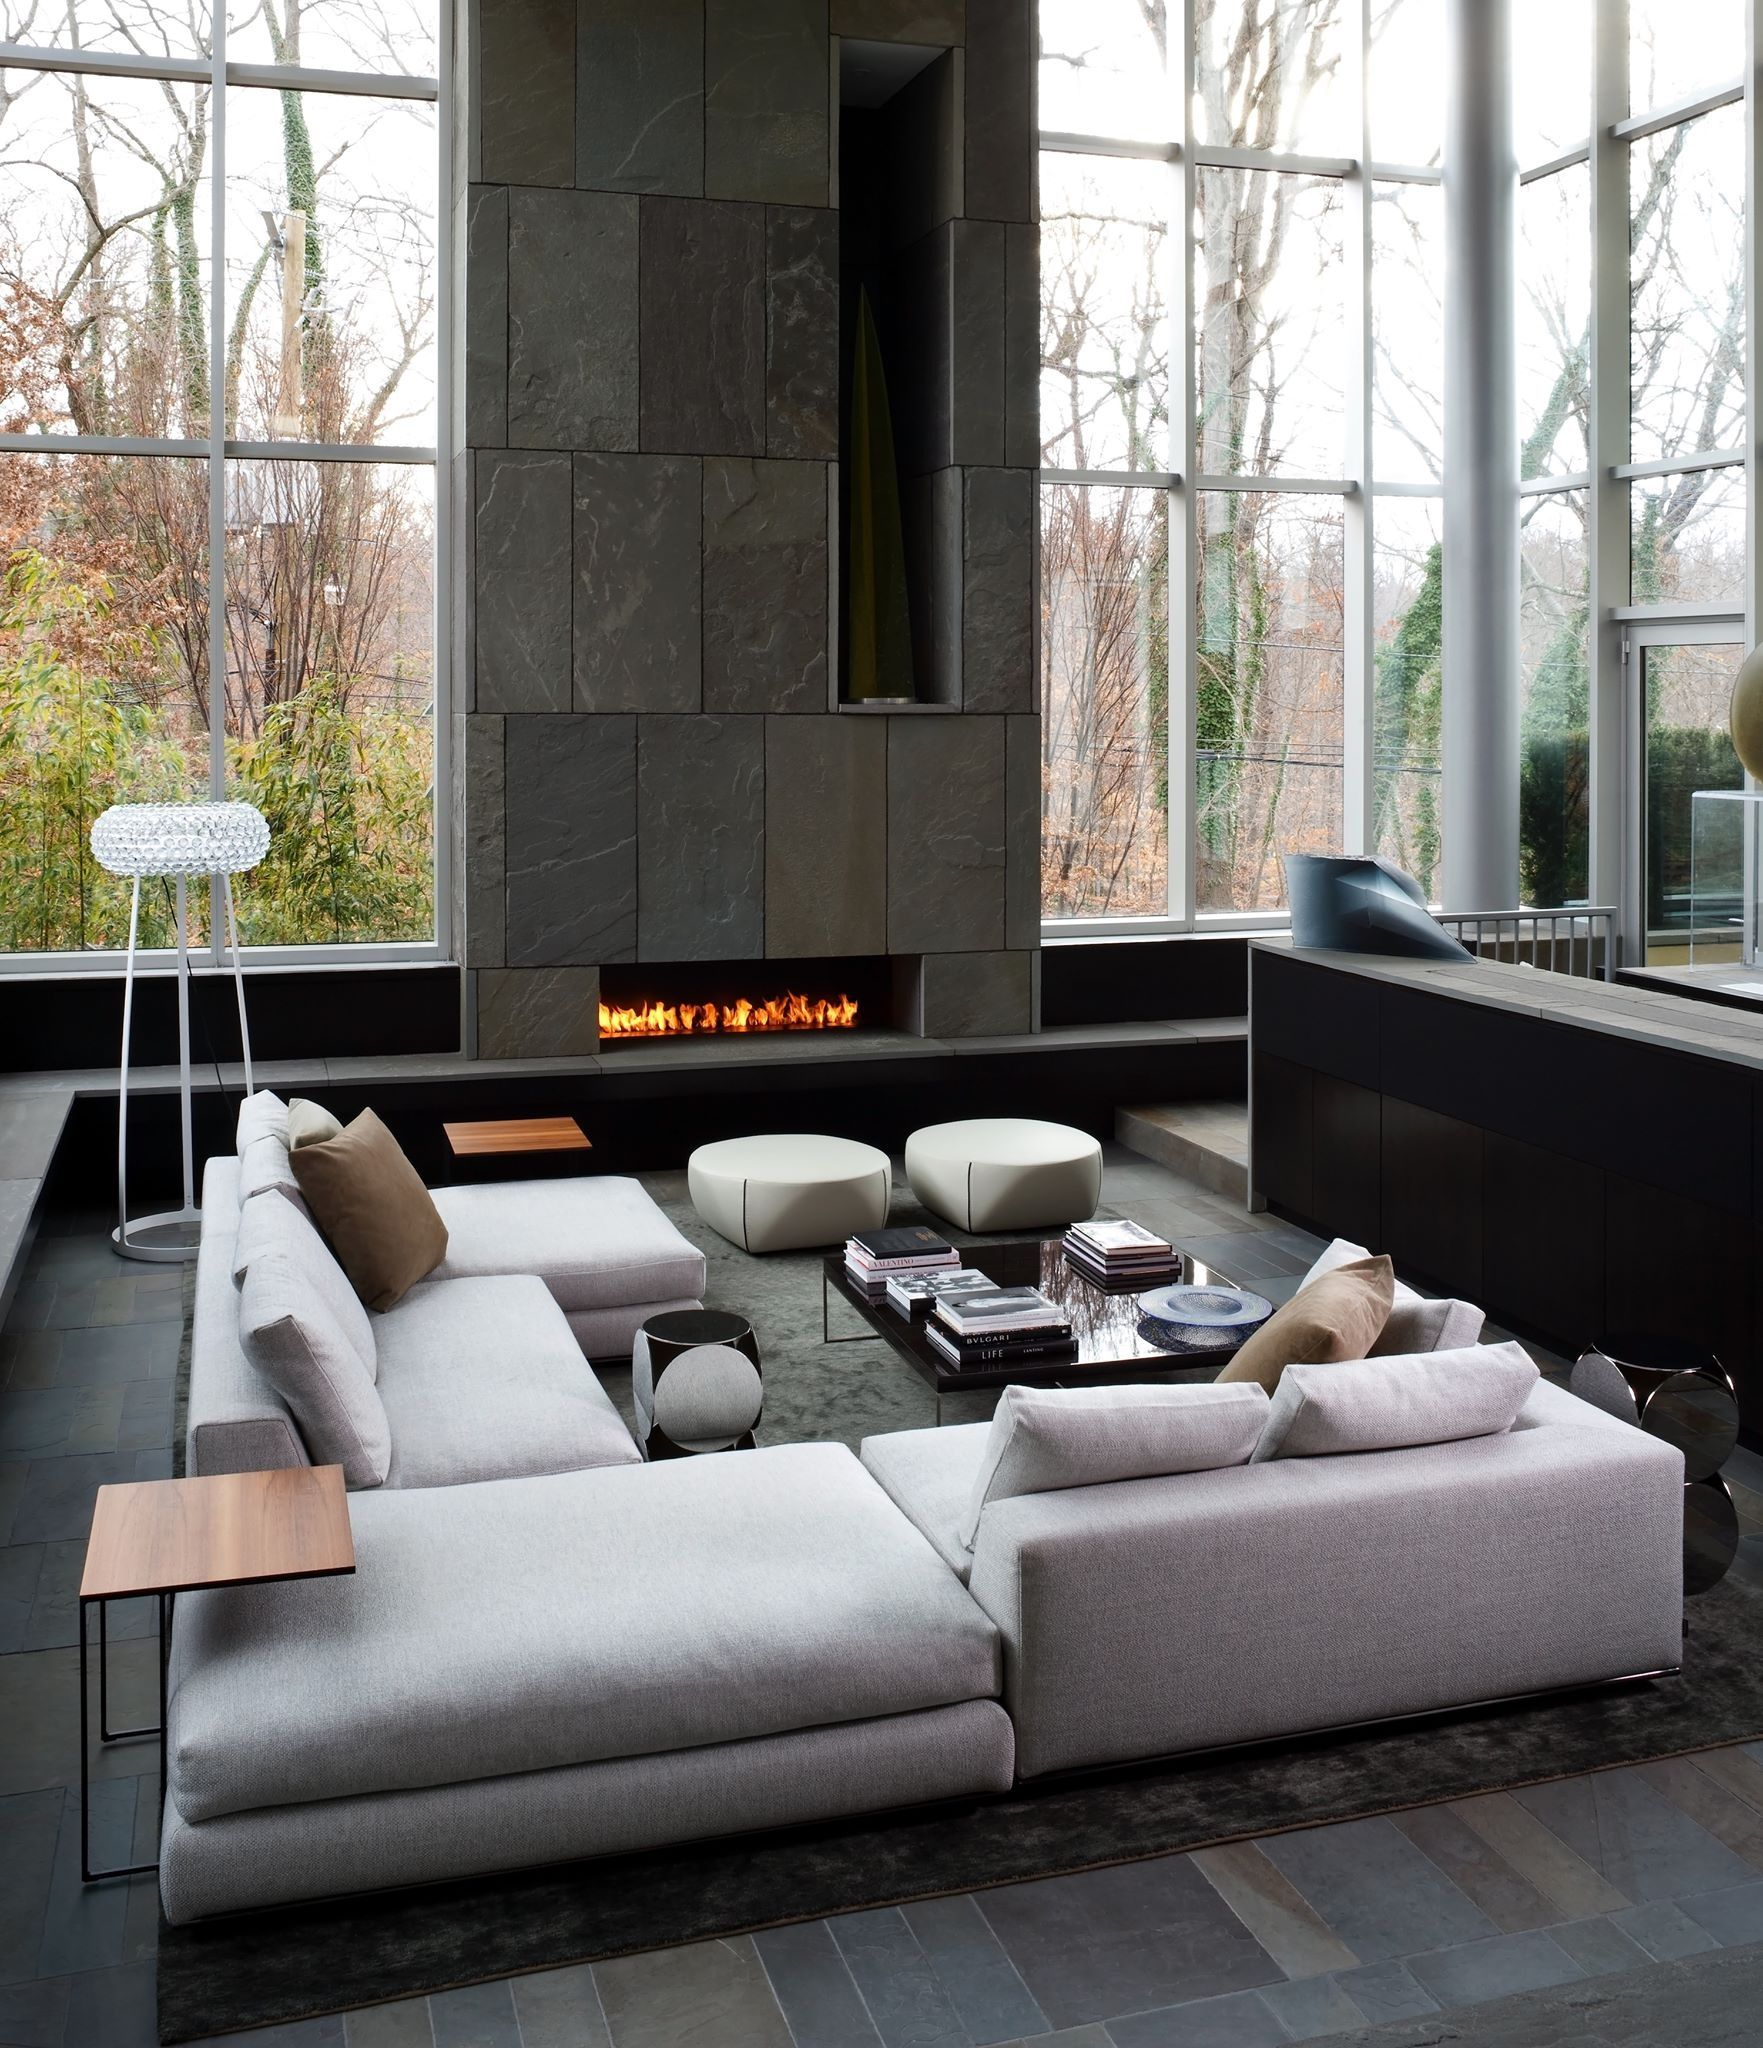 Gas fire place monochrome grey interior living rooms for Modern 50s style living room